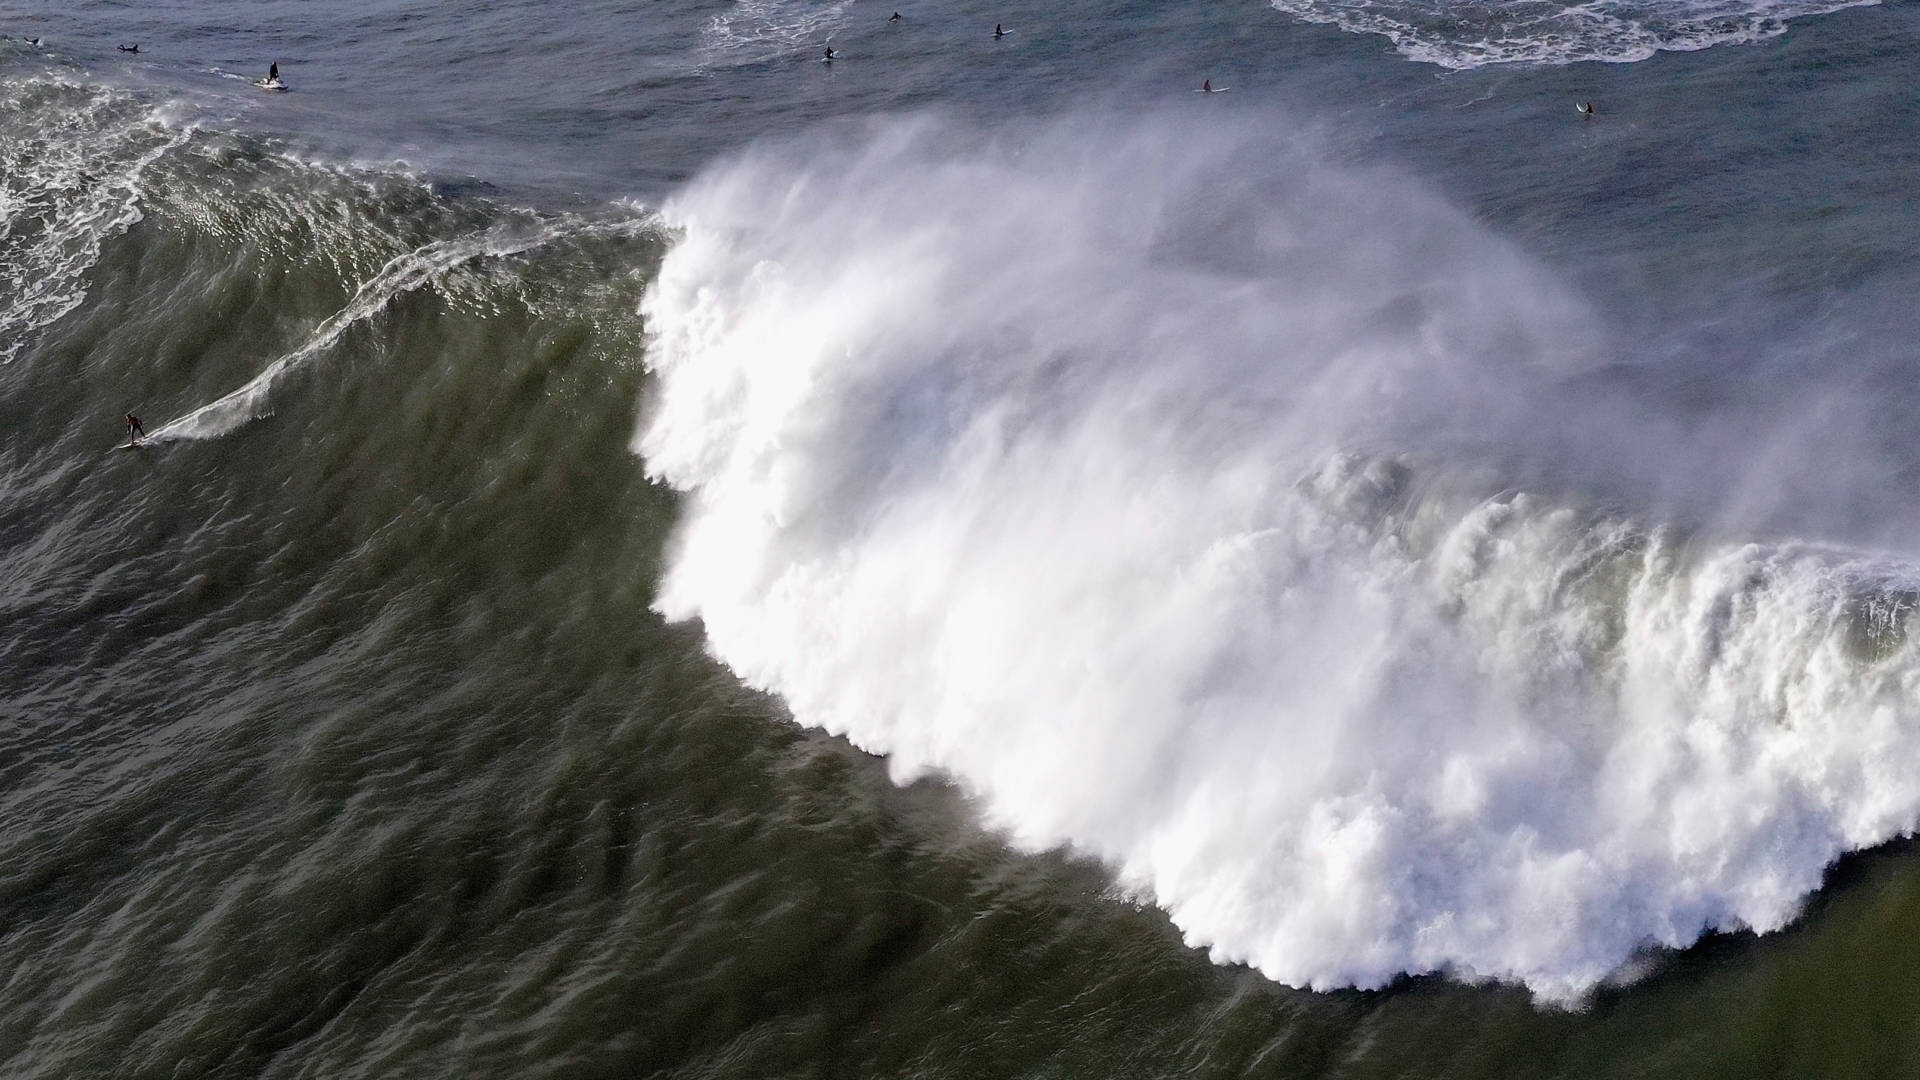 """A surfer rides a wave at Mavericks off Half Moon Bay on Monday. The NWS warned of waves that could reach """"50+ feet at favored breaks"""" in Northern California. Ezra Shaw/Getty Images"""